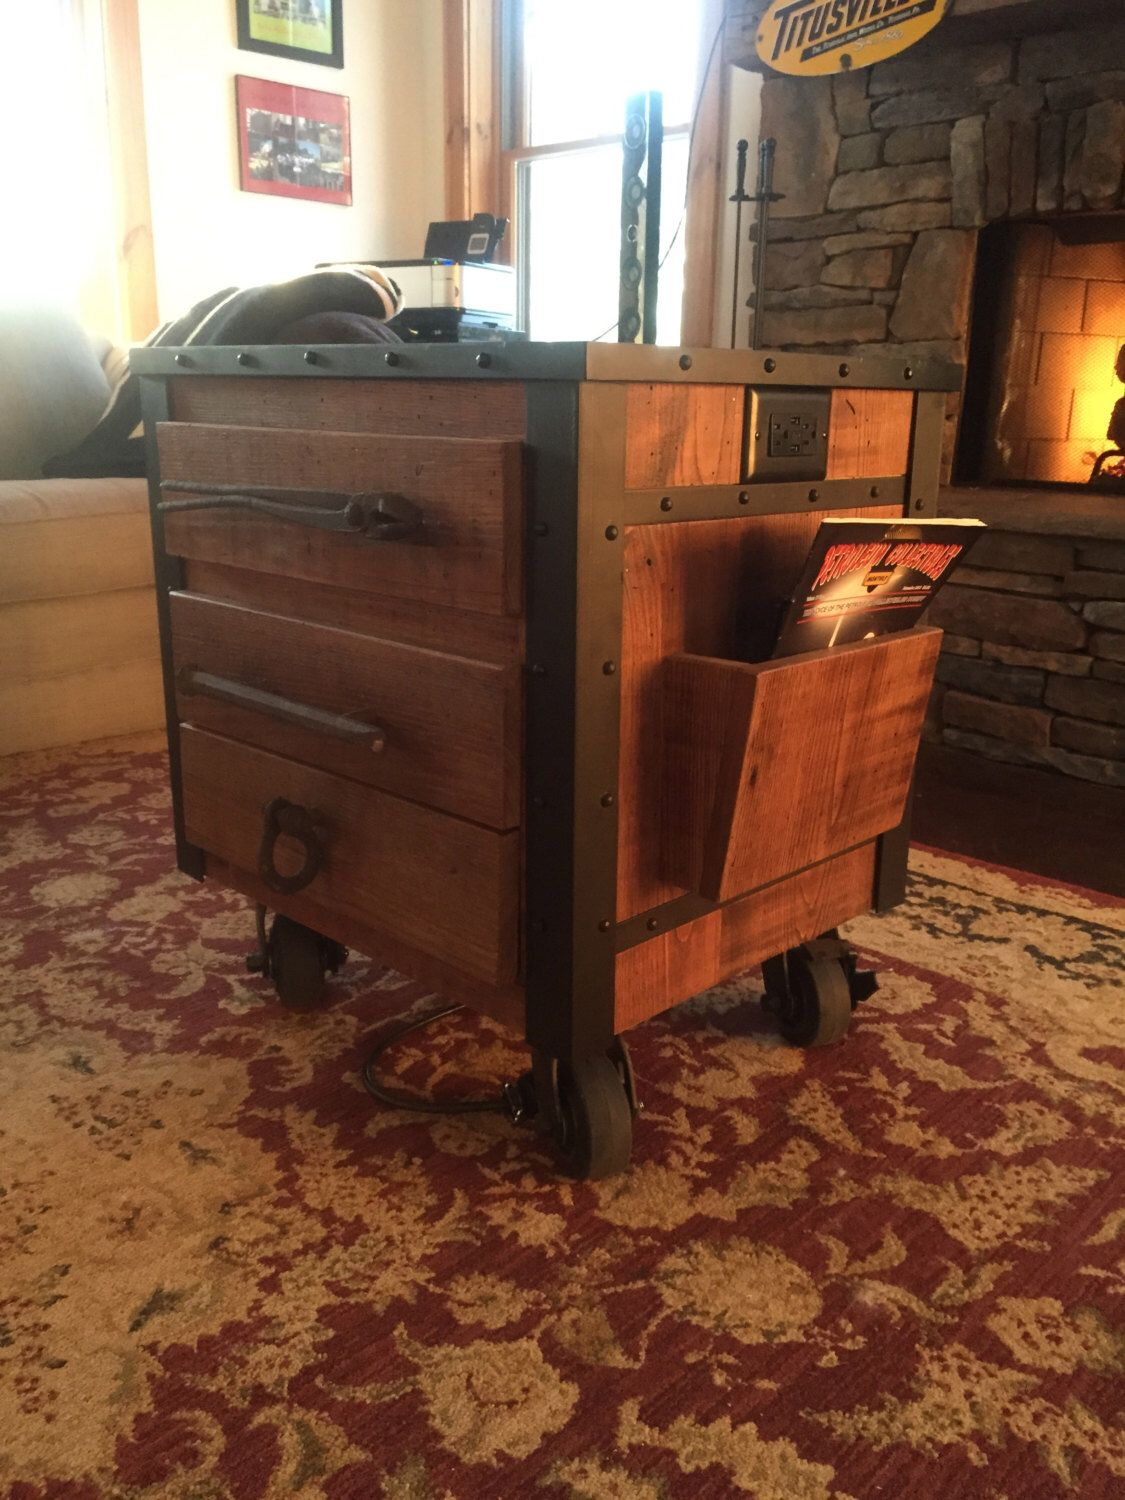 Industrial End Table For Man Cave Or Living Room  Custom Made From Wormy  Chestnut Wood, Riveted Metal And Reclaimed Items. By TitusvilleIronWorks On  Etsy ...